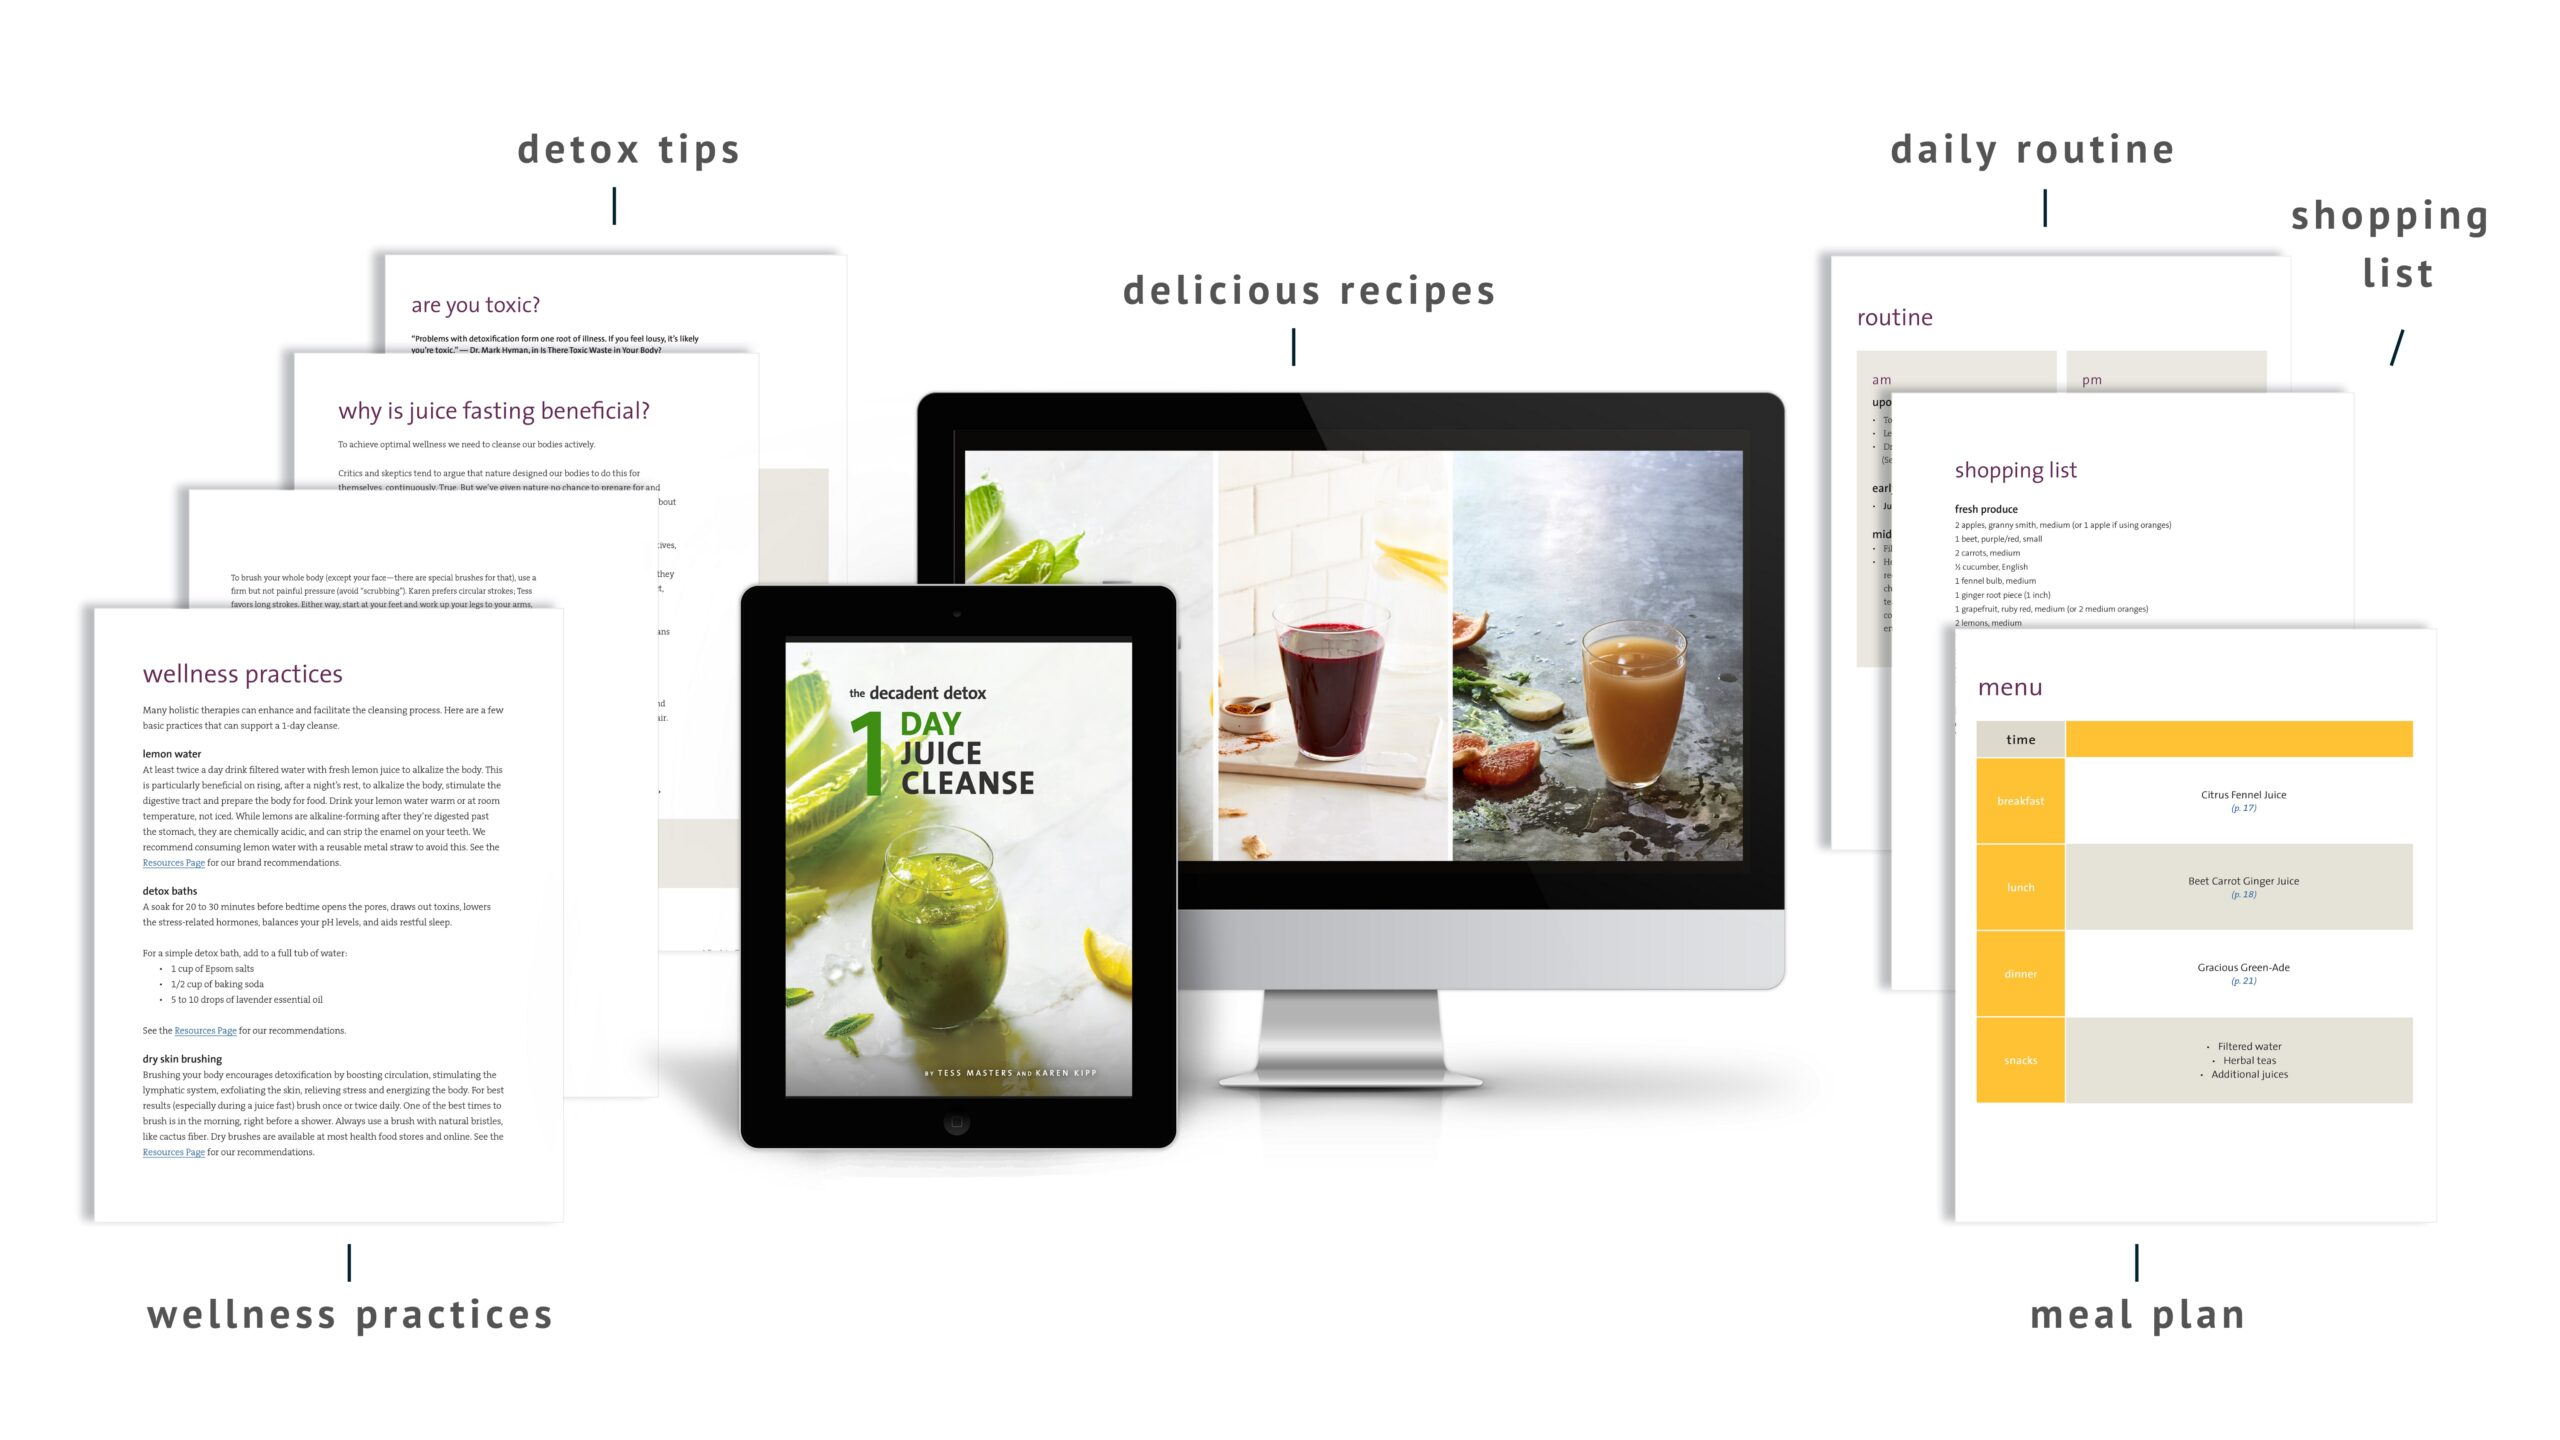 1 Day Juice Cleanse Desktop Hero Arrows